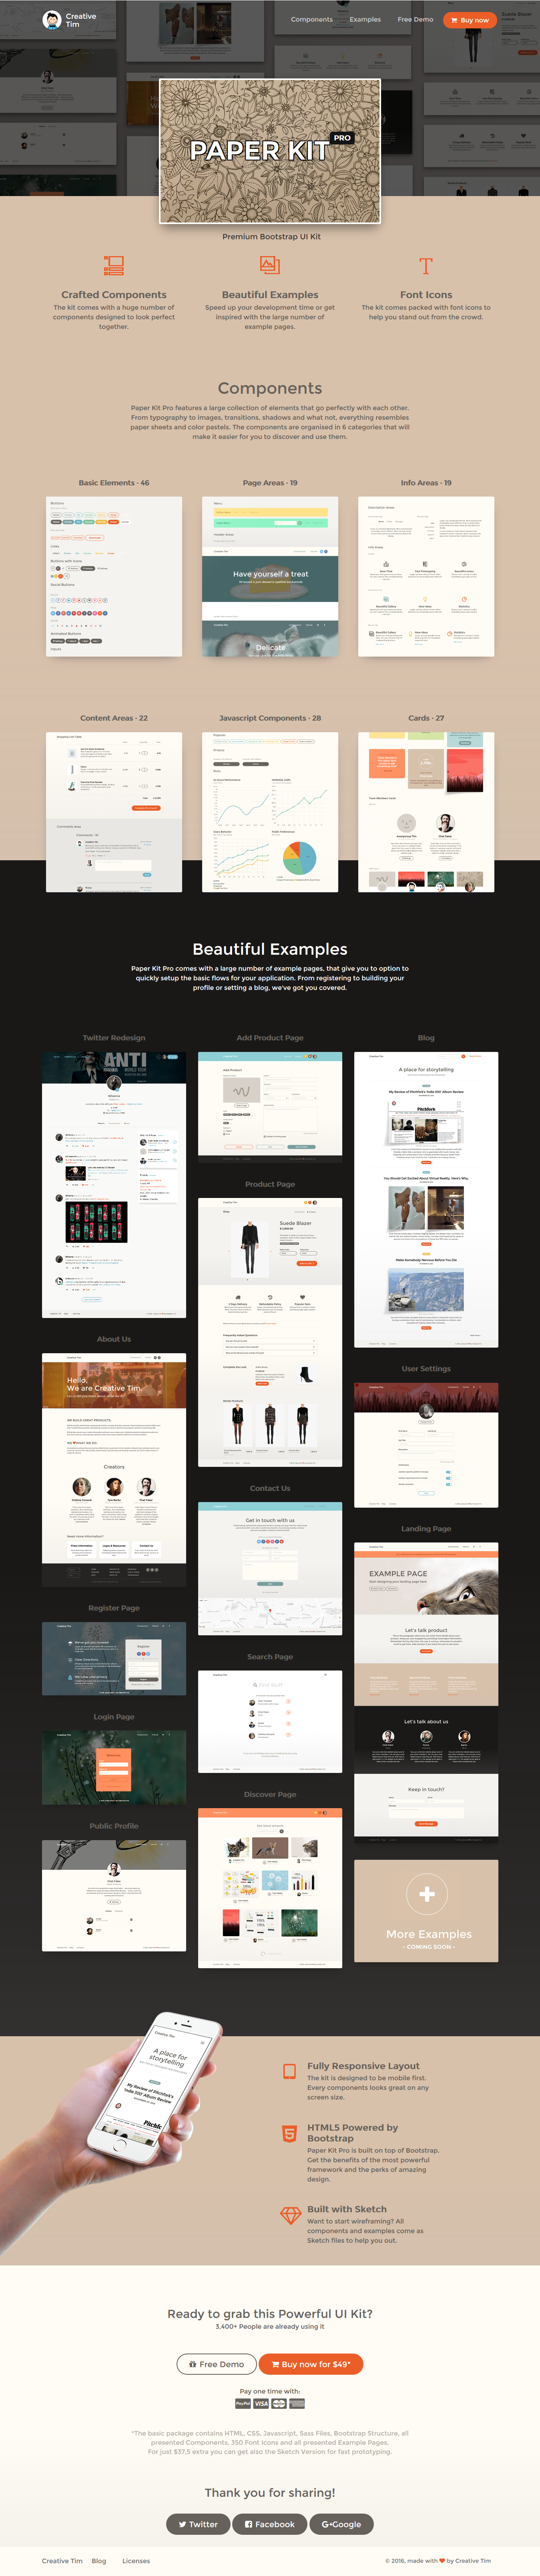 Paper Kit PRO: Premium Bootstrap UI Kit is a set of coded web